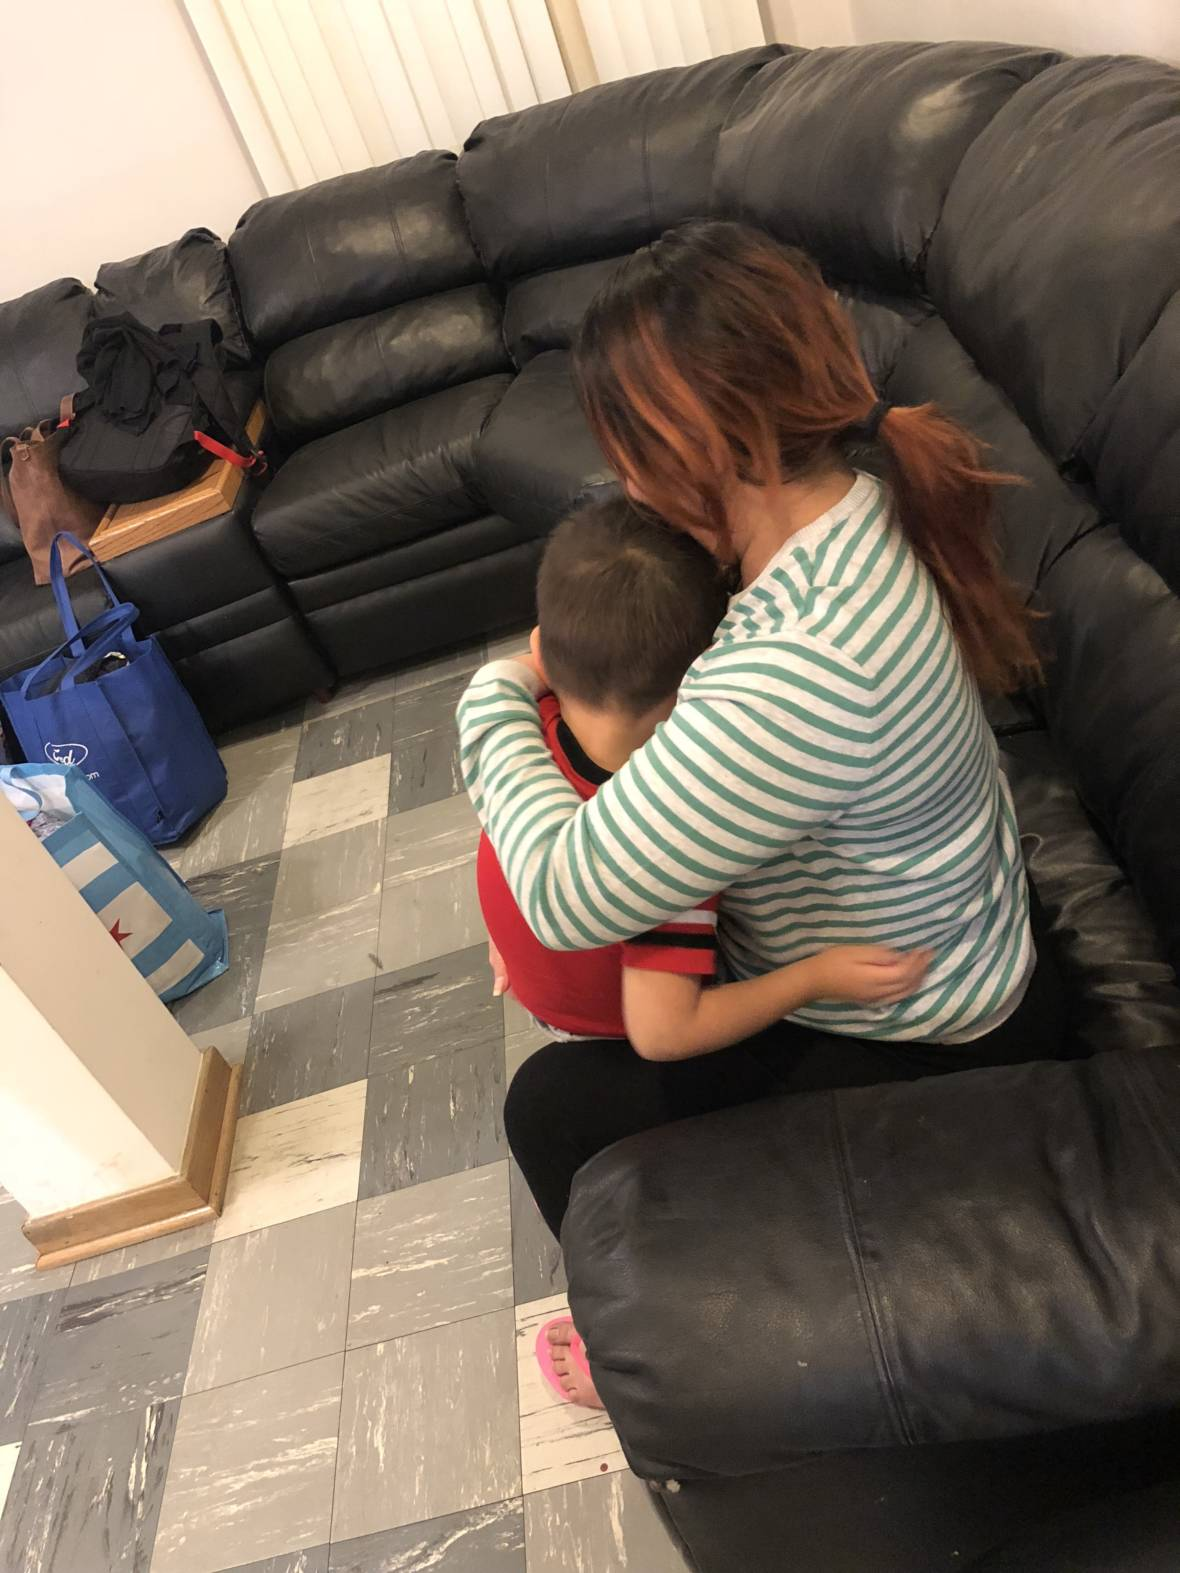 After 8-Month Separation, Salvadoran Asylum-Seeker Reconnects With 4-Year-Old Son